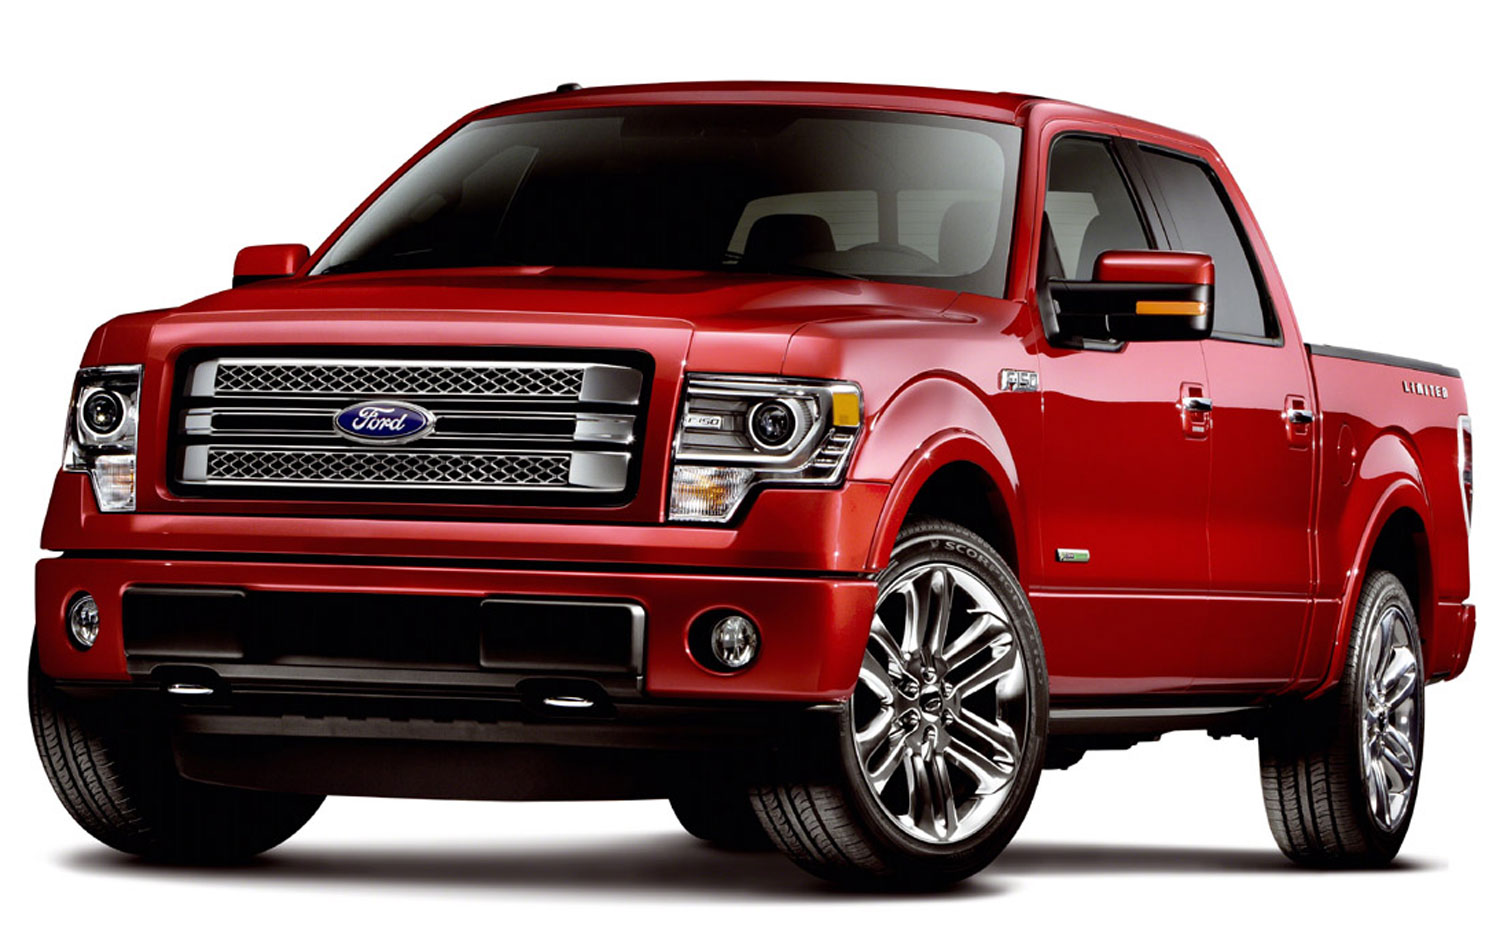 Ford F-150 2014 photo - 9